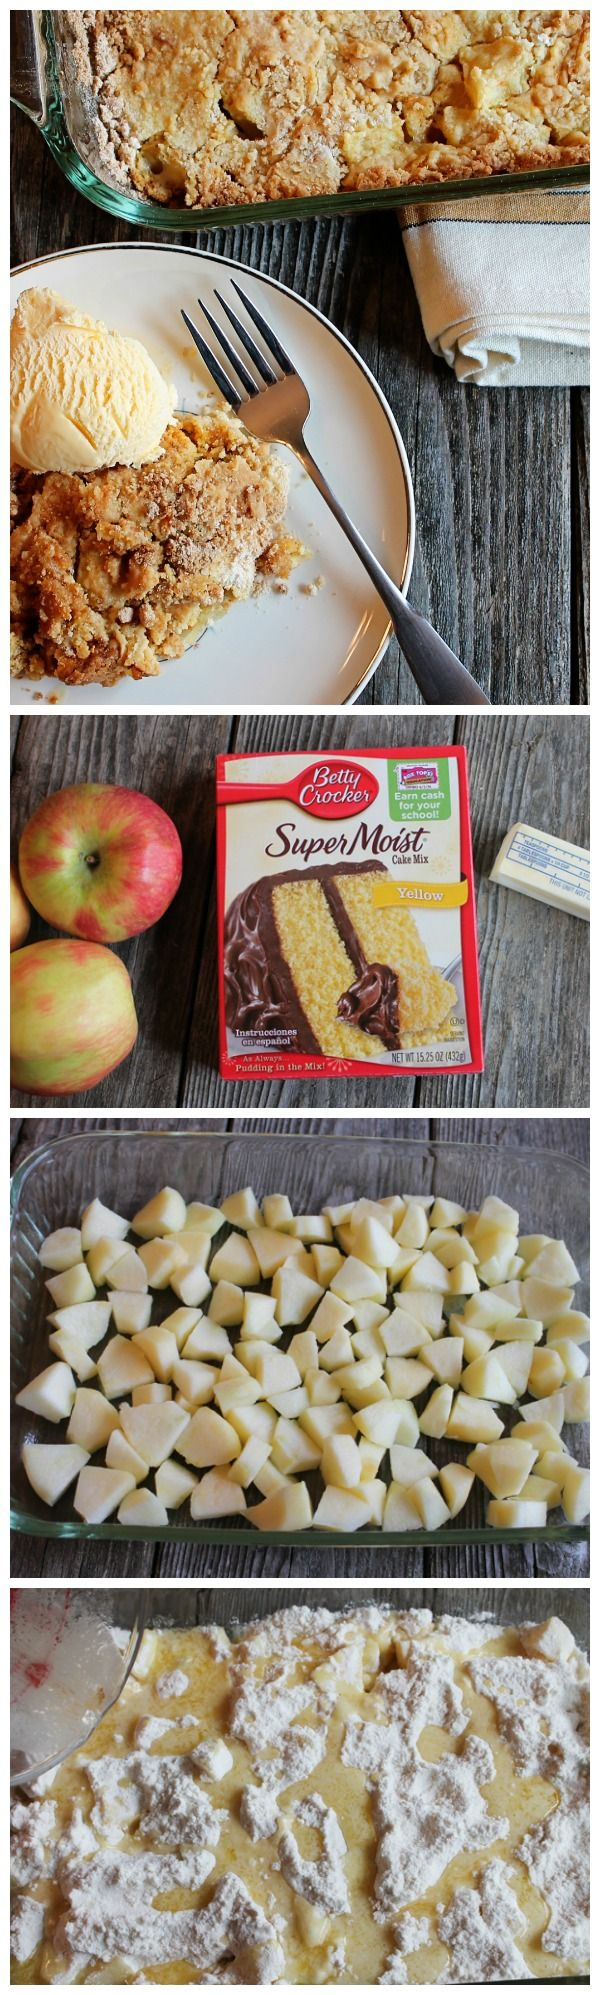 Just because you're short on ingredients doesn't mean you shouldn't make dessert! All you need to make this simple-but-yummy fall apple dessert is a box of Betty's yellow cake mix, butter and apples. Top with a scoop of ice cream or caramel sauce for a delicious upgrade.